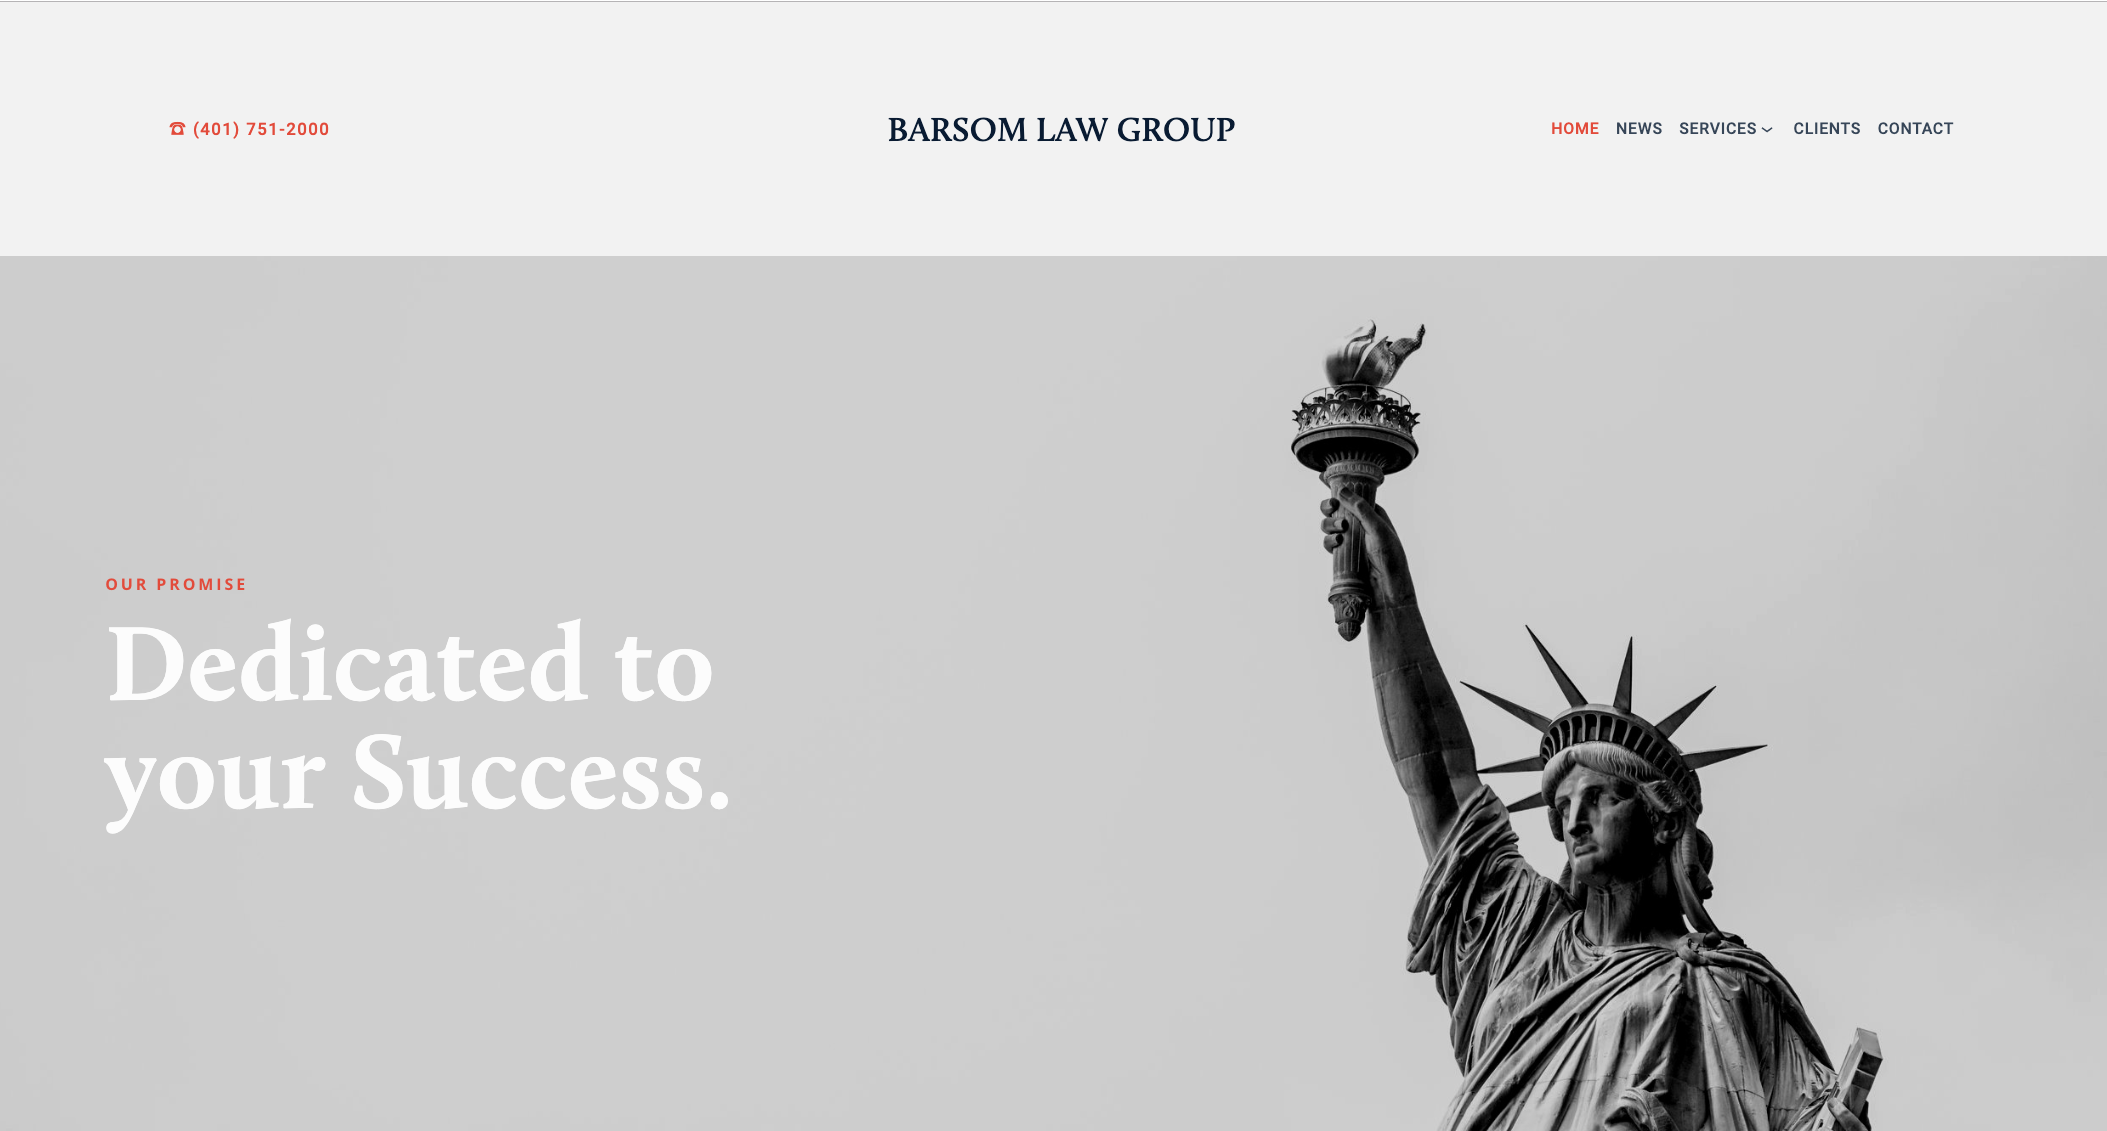 www.barsomlaw.com - Experienced Business and Immigration Lawyers in Rhode Island and Massachusetts